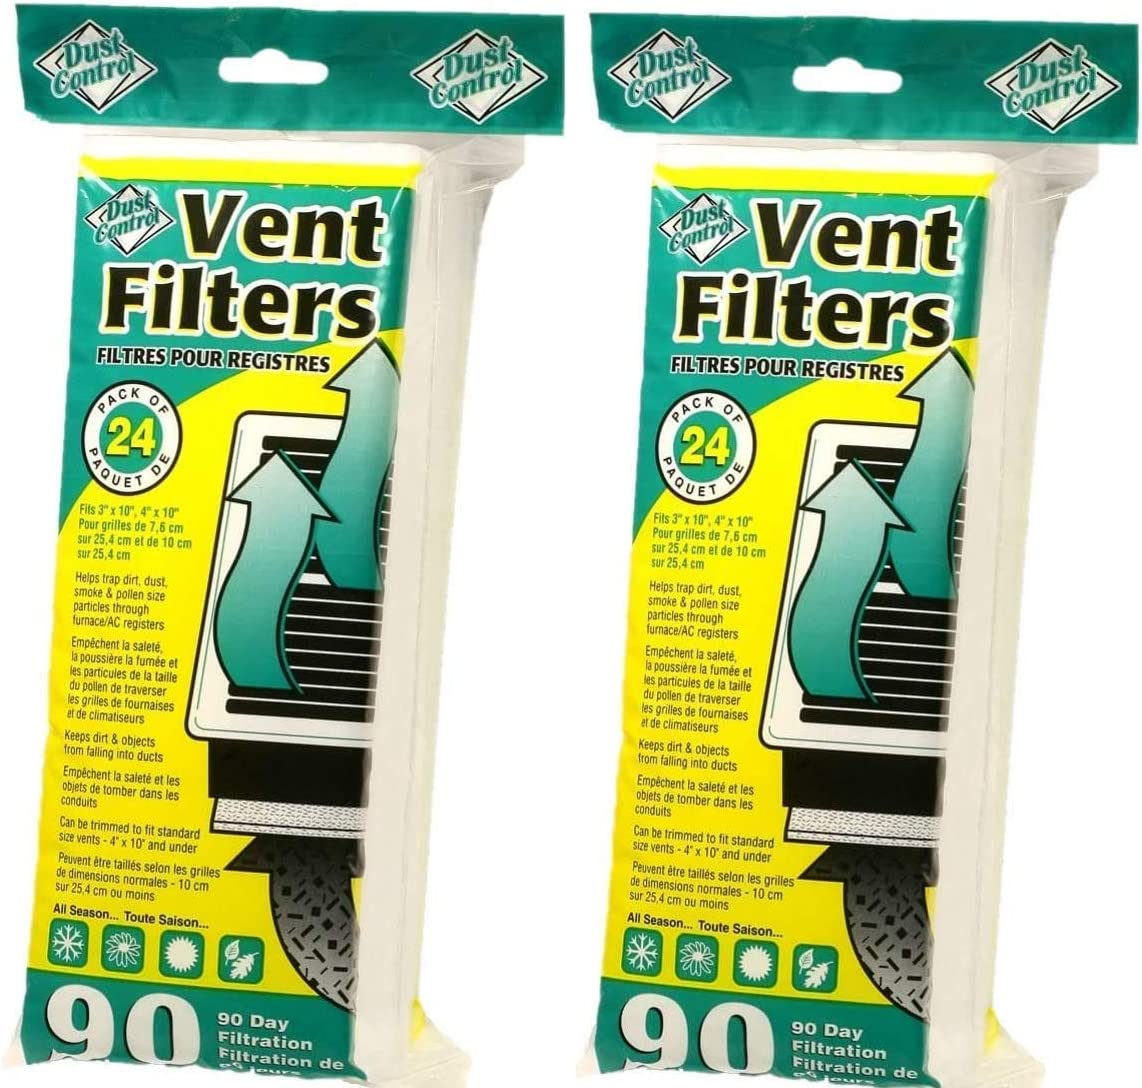 Dust Control Air Vent Filters - 48 Air Vent Filters for Home| Helps Trap Dirt, Dust, Smoke, Pollen Size Particles | Provides Fresh, Filtered Air | for Bathrooms, Bedrooms, Kitchen, Family Rooms